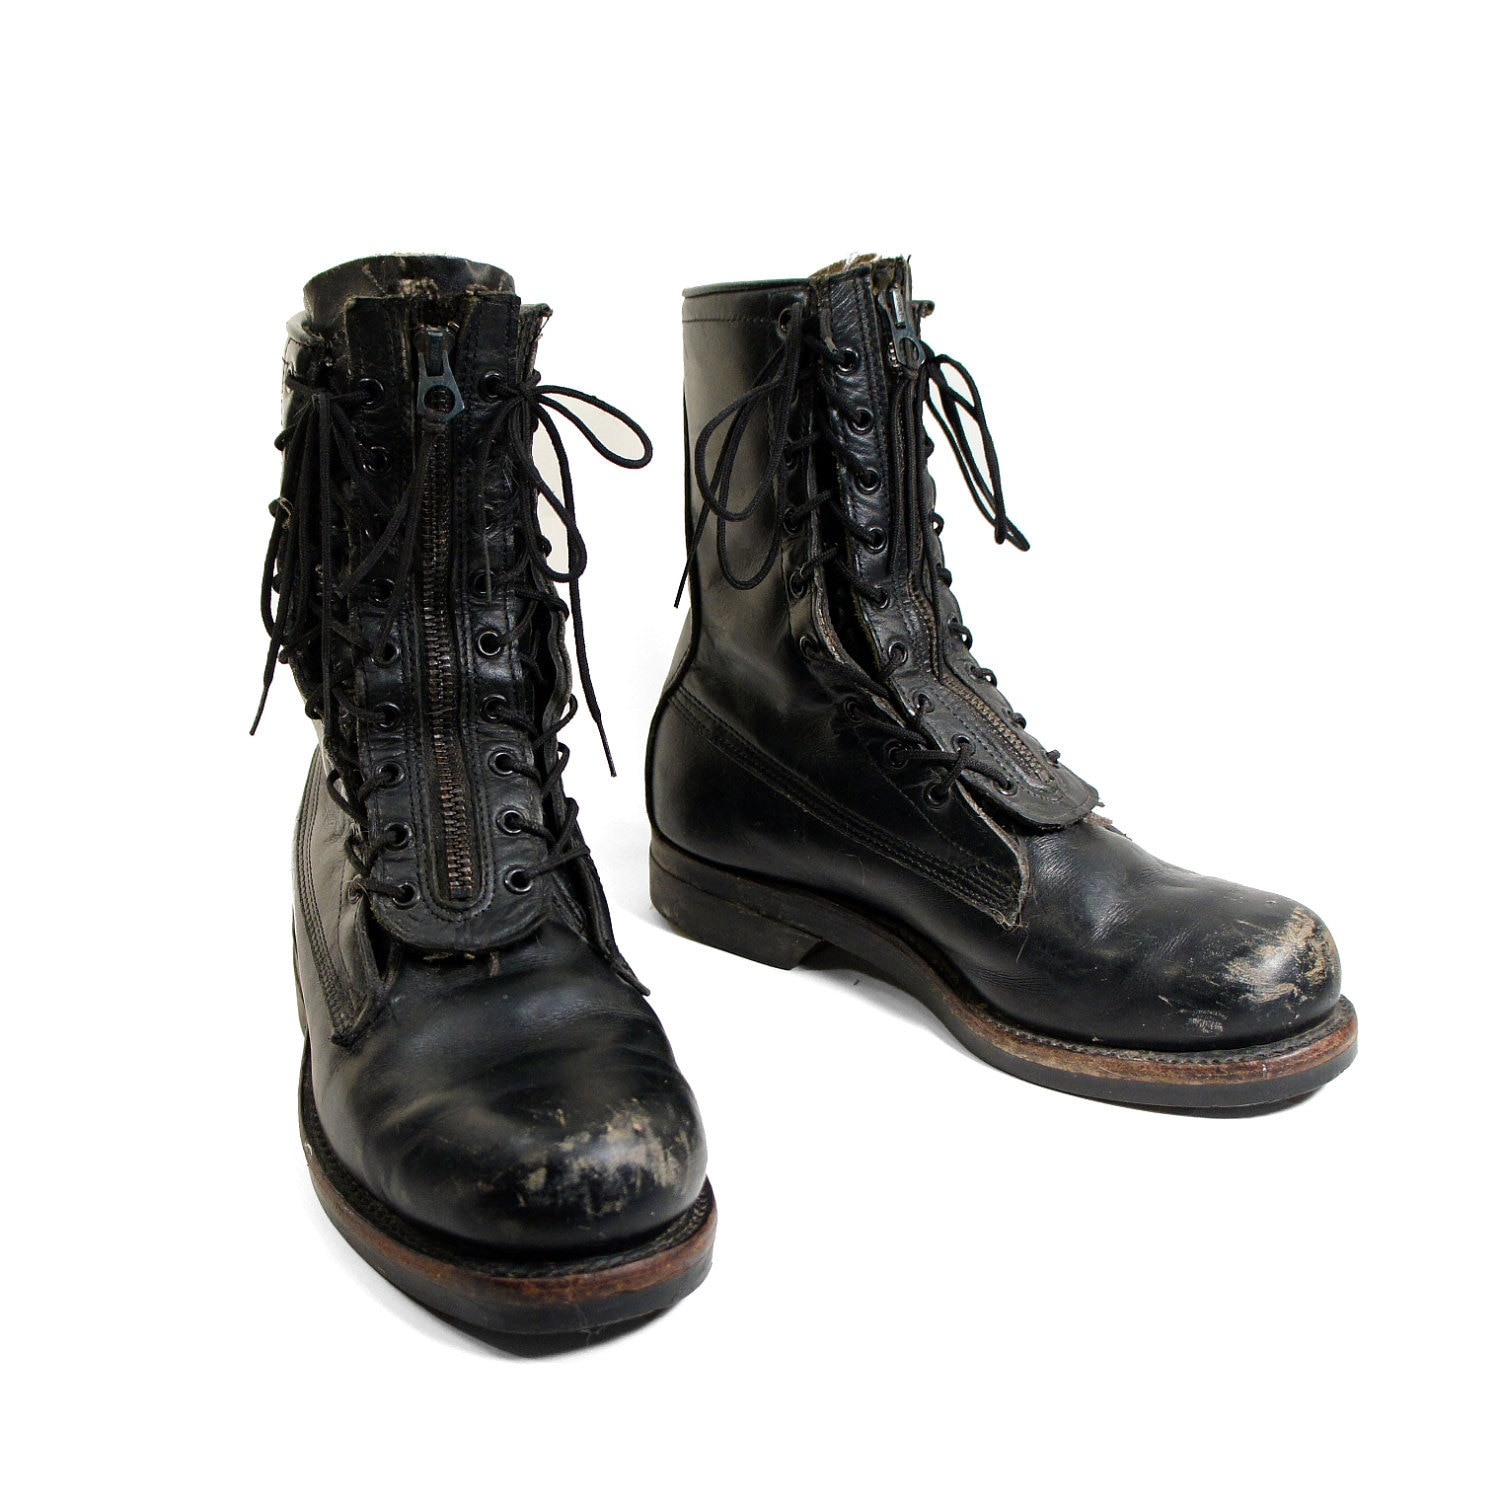 Creative Shoes  Gorgeous Combat Boots For Women Photo Gallery  Fabulous Black